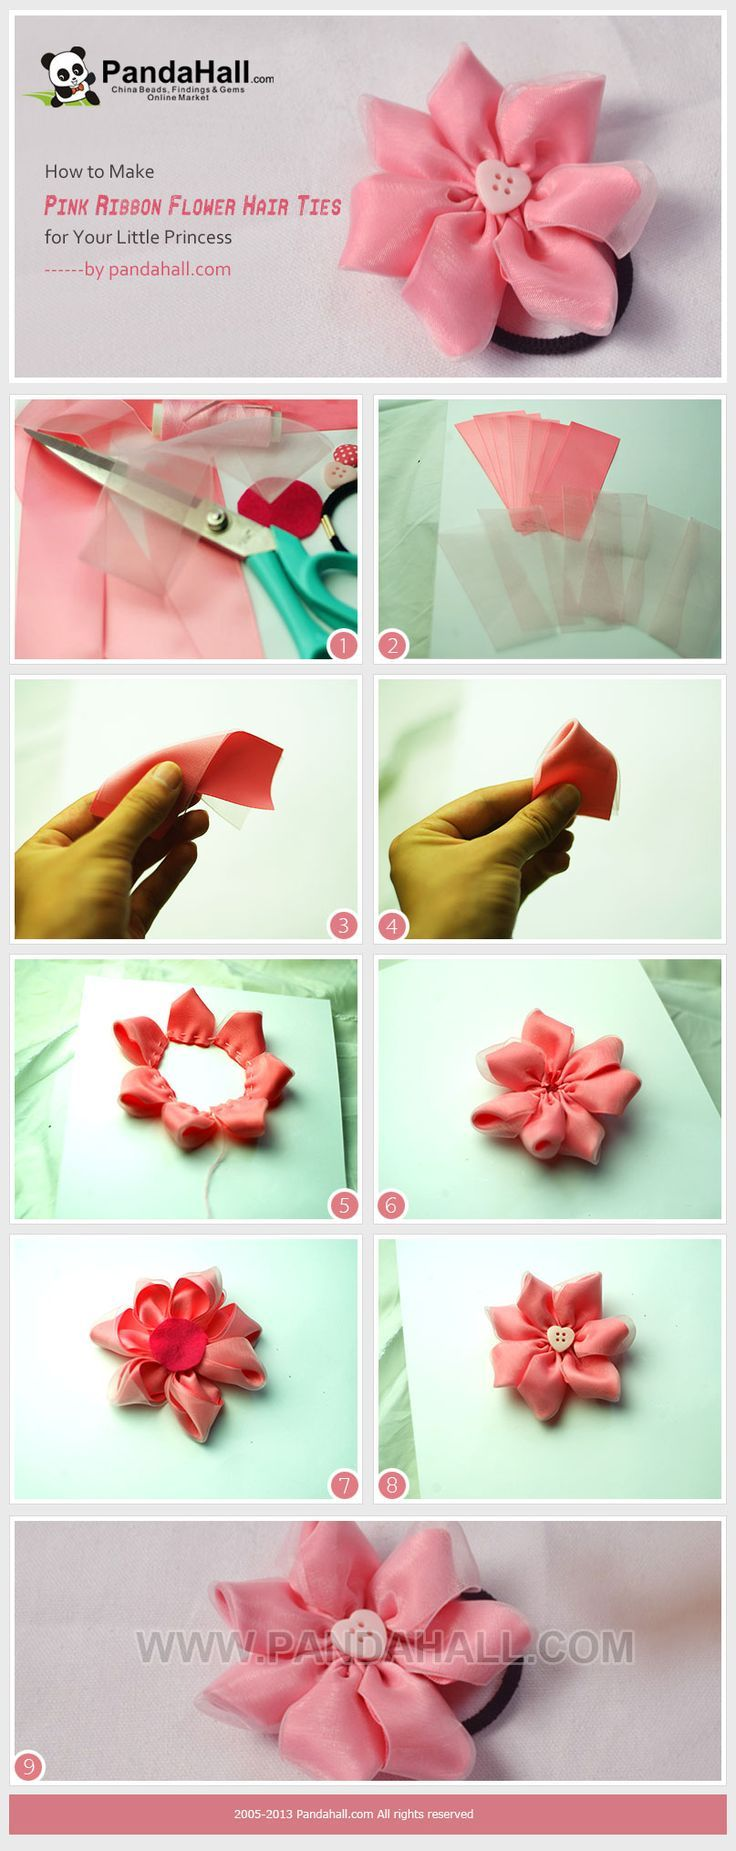 How To Make Pink Ribbon Flower Hair Ties For Your Little Princess